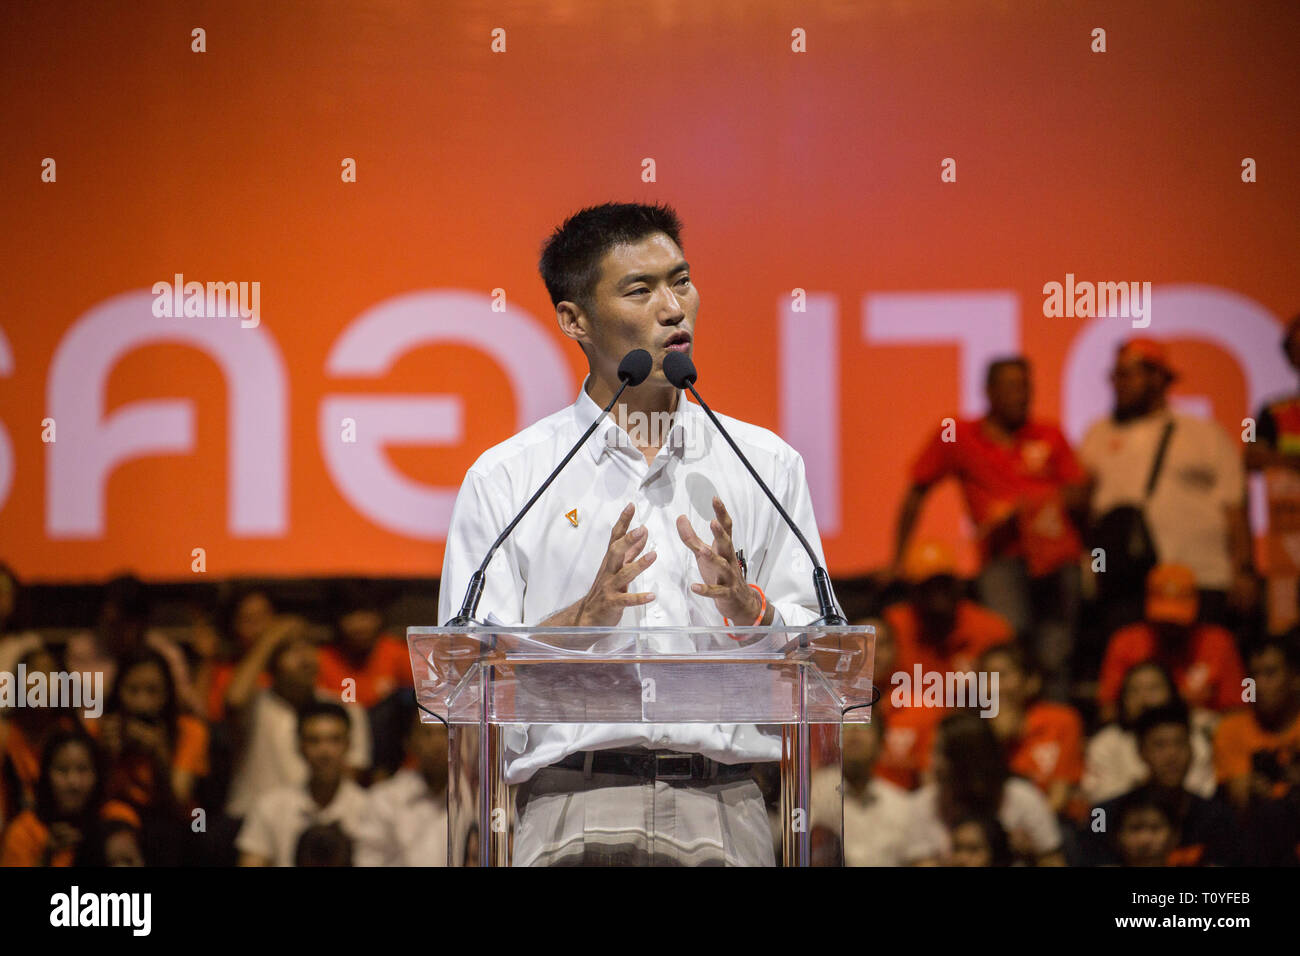 Bangkok, Thailand. 22nd Mar, 2019. Future Forward Party Leader Thanathorn Juangroongruangkit speaks during the Future Forward Party latest rally before the Thai General Election at the Thai-Japanese Stadium in Bangkok.The country will hold the general election on March 24, 2019, five years after the May 2014 military coup by Junta chief Prayut Chan-o-cha. Credit: Guillaume Payen/SOPA Images/ZUMA Wire/Alamy Live News Stock Photo